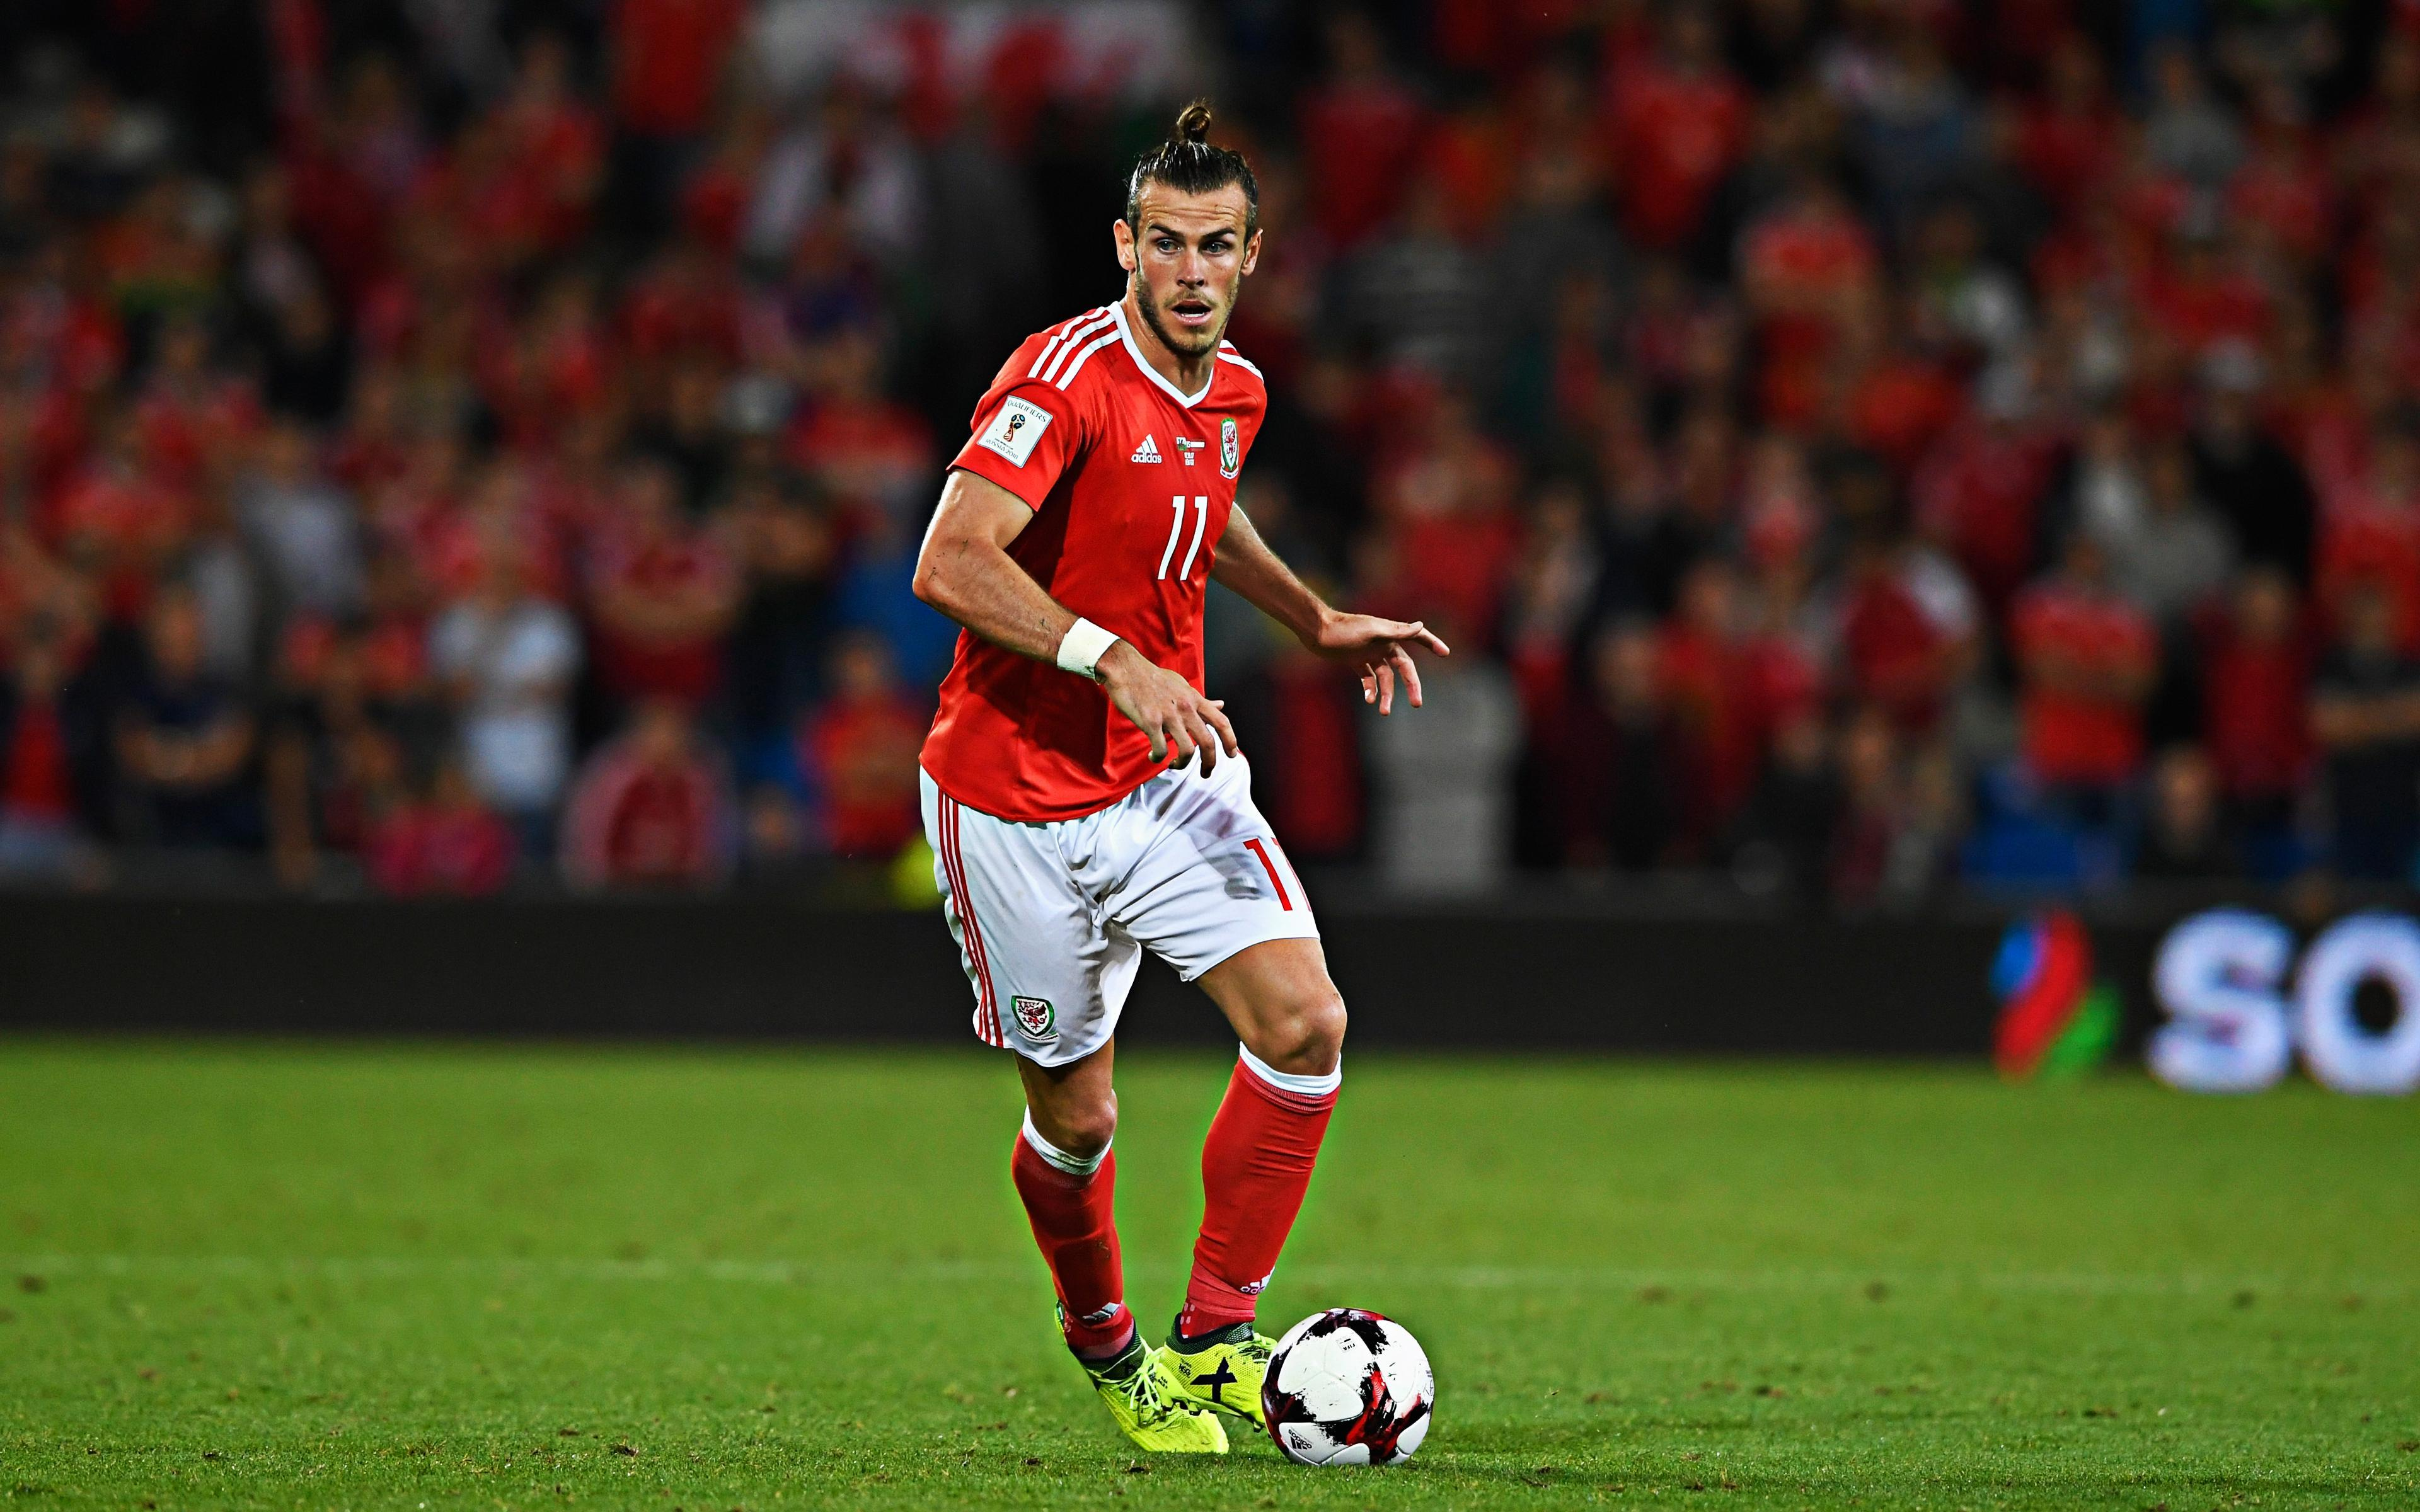 Download wallpapers Gareth Bale, 4k, Wales national football team